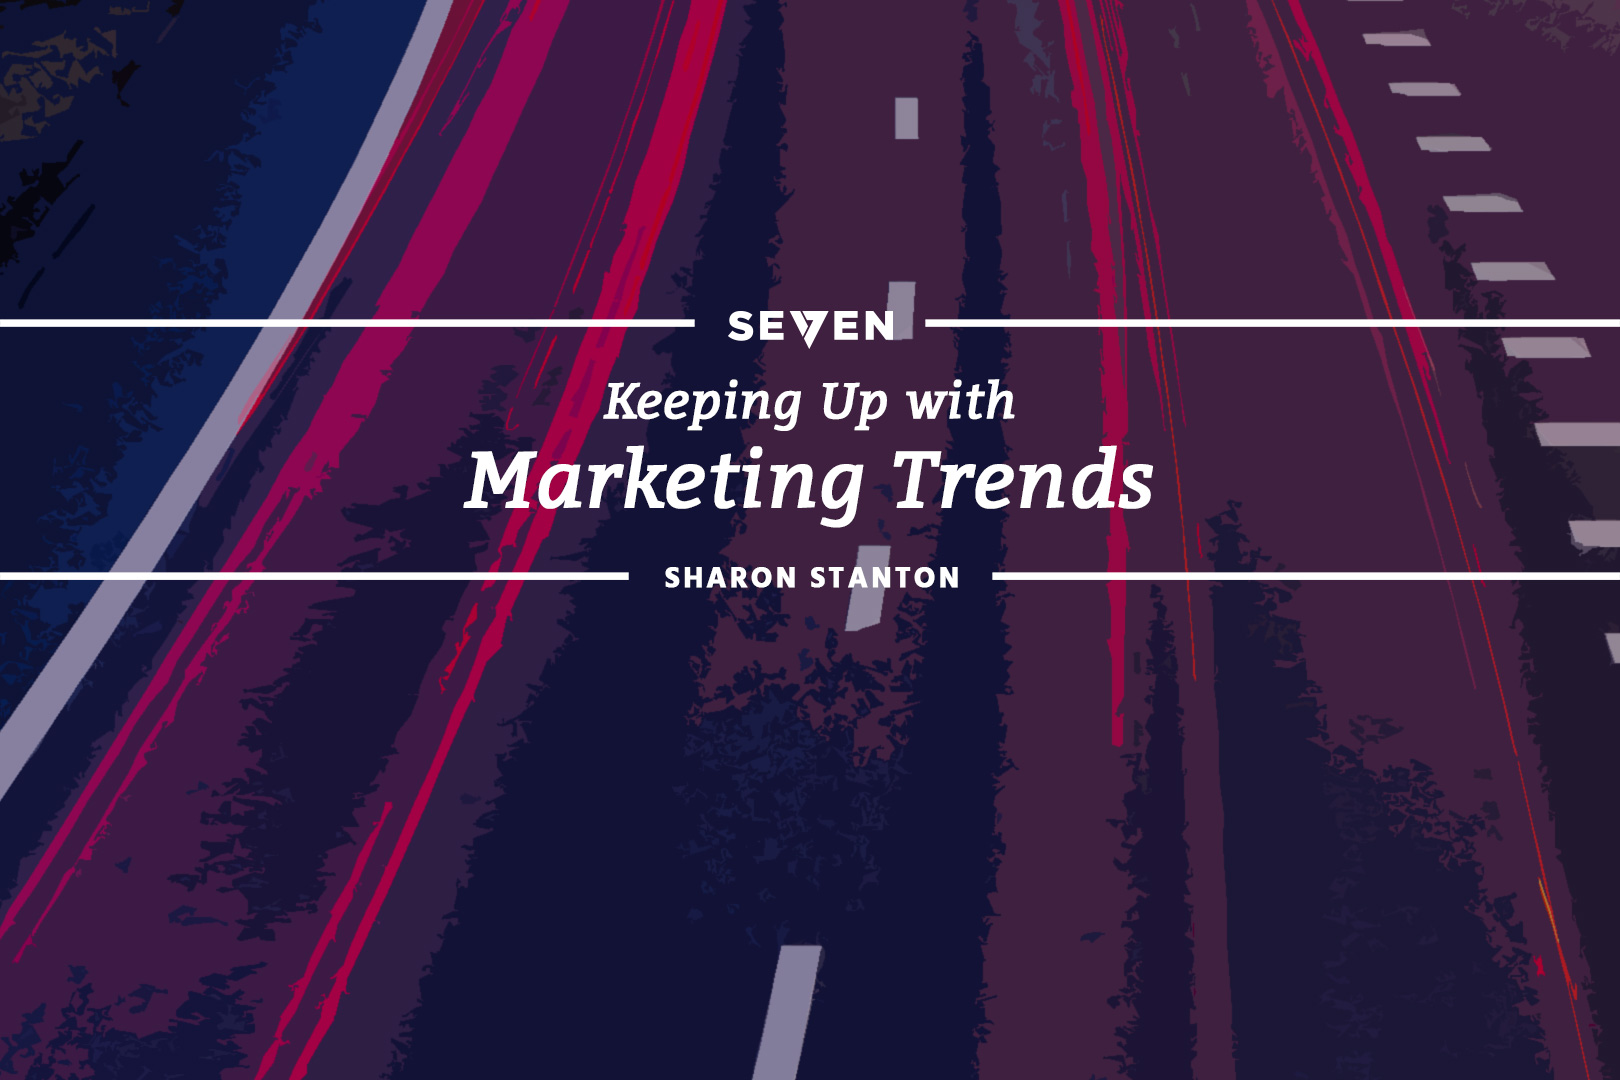 How to Keep Up With Marketing Trends